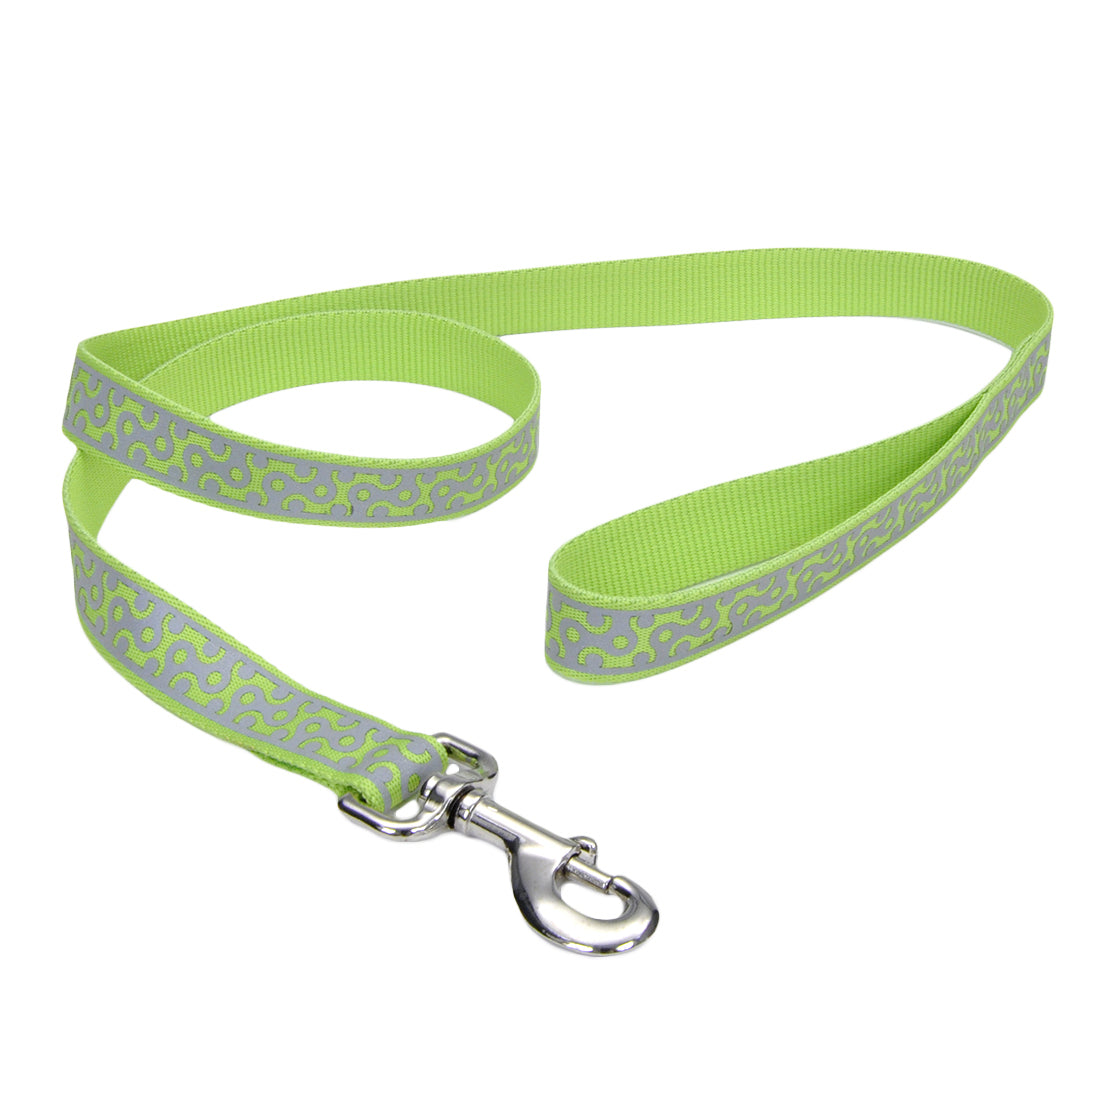 "Coastal Lazer Bright Reflective Leash 6' - 1"" Lime Geometric"